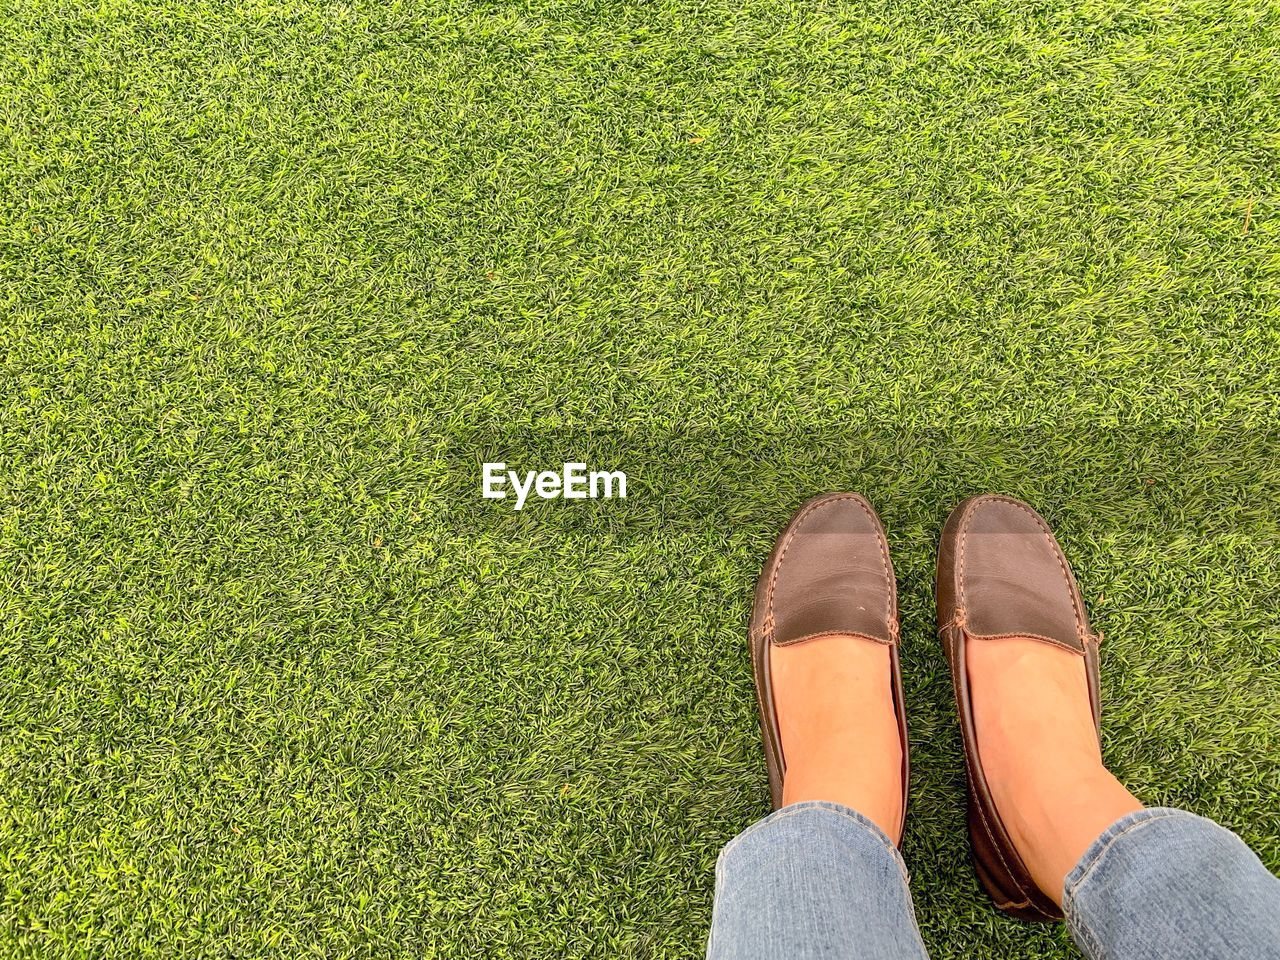 human leg, low section, body part, human body part, grass, one person, shoe, green color, personal perspective, plant, lifestyles, real people, high angle view, leisure activity, standing, nature, day, unrecognizable person, limb, human foot, human limb, outdoors, sock, jeans